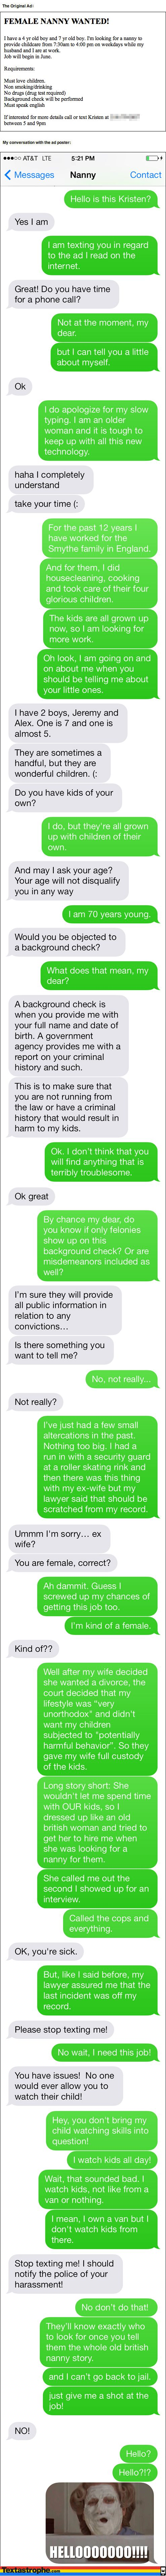 Dude Pretending To Be A Nanny In Prank Text Is Almost Too Funny To Be True